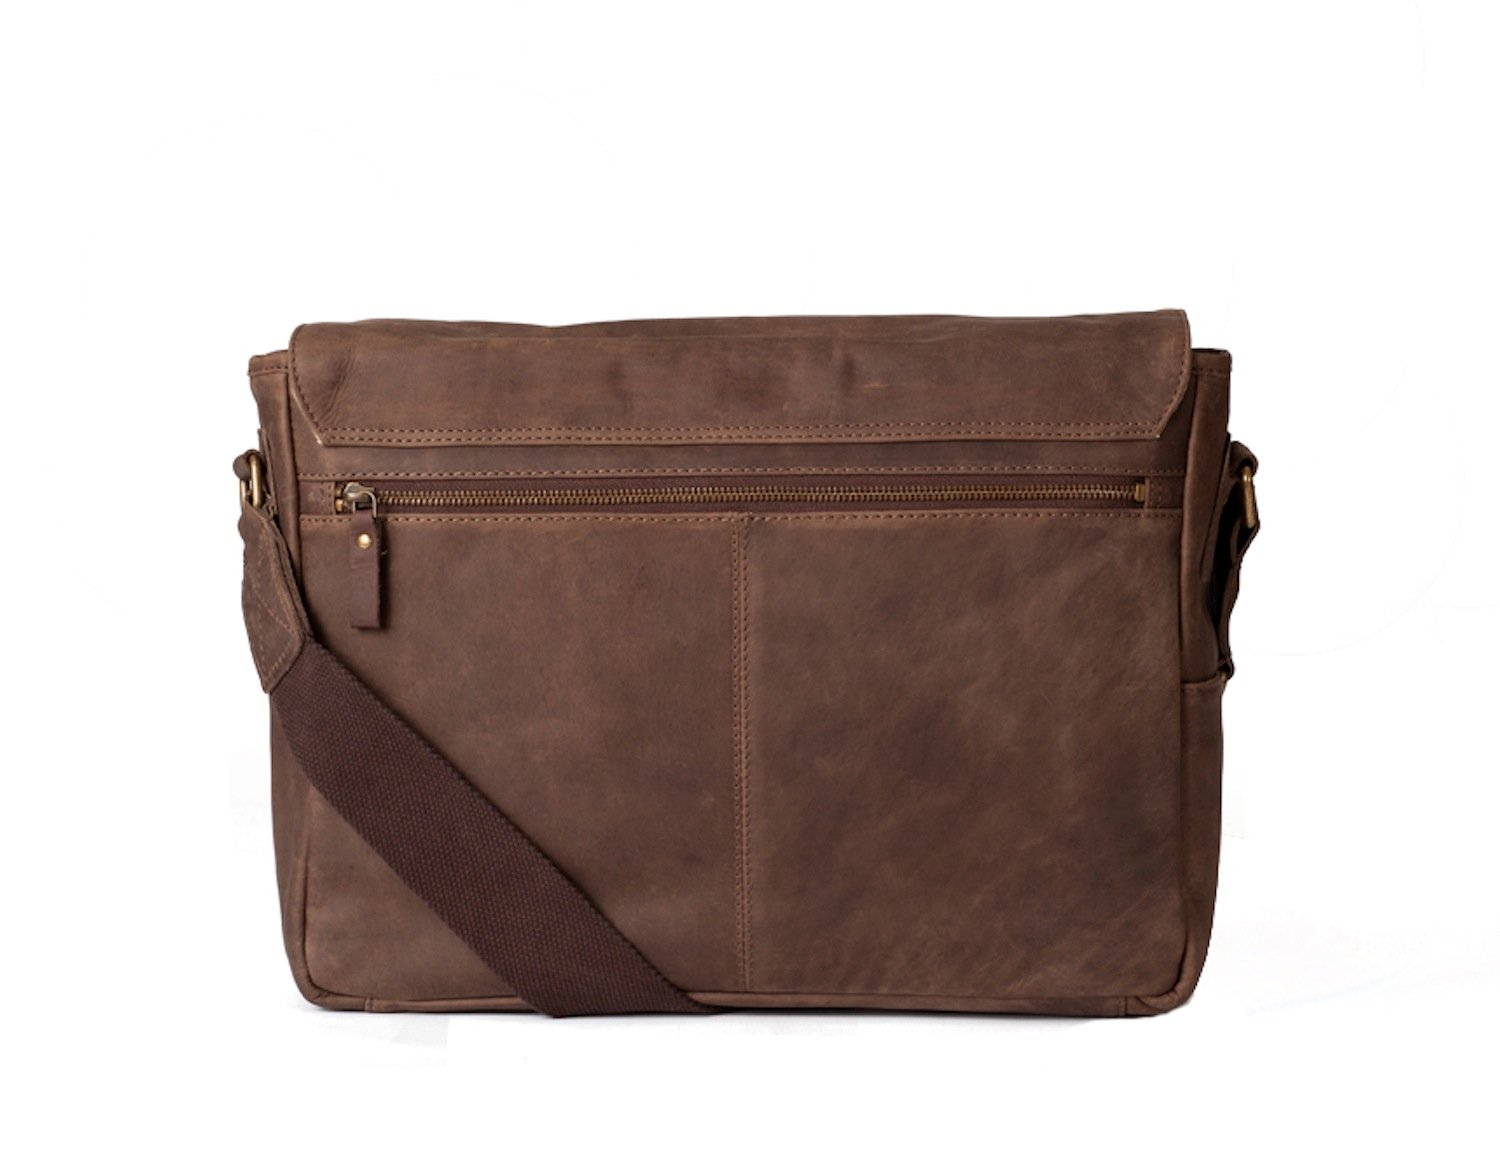 Amazon.com  Navali Mainstay Leather Laptop Messenger Bag - Crazy Horse  Leather - Perfect for 13 inch  15 inch Laptops - Brown  Computers    Accessories 0d20f06745256